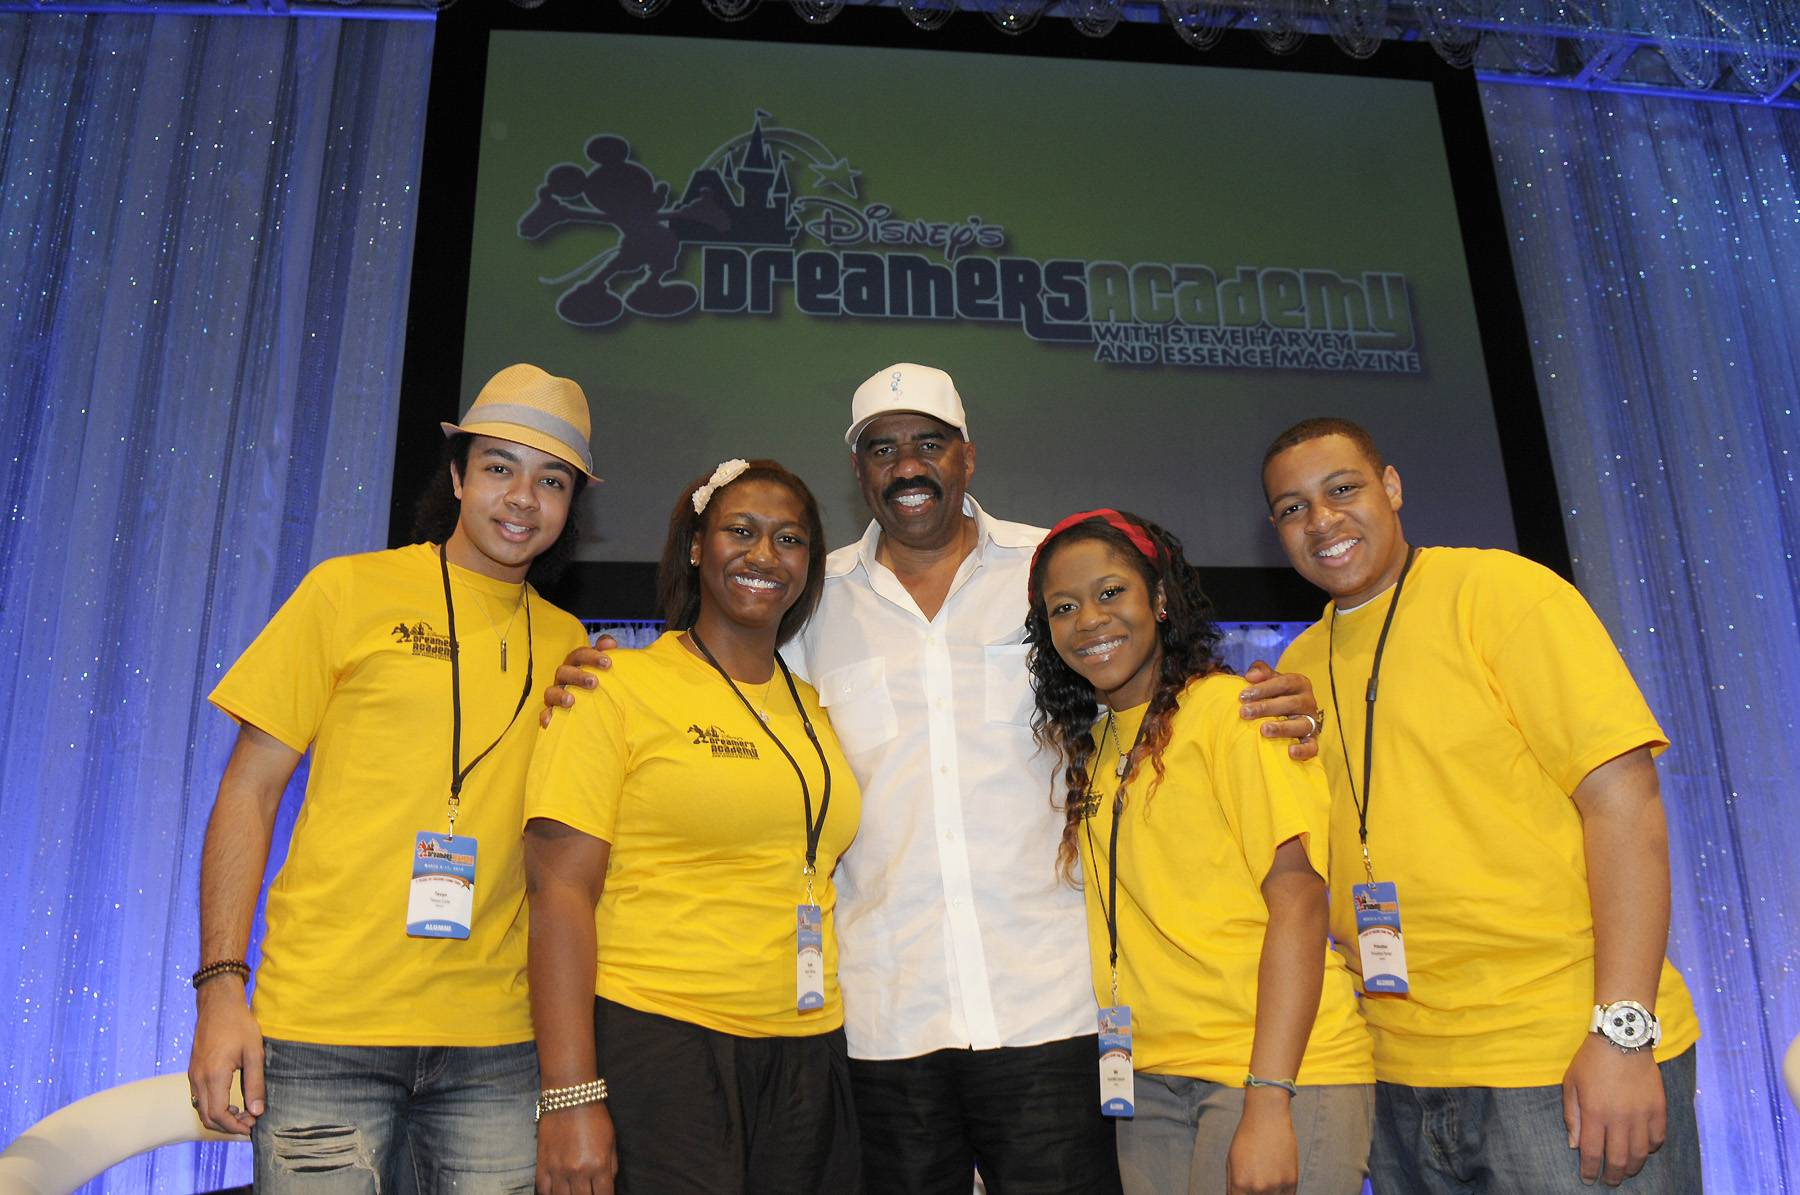 Bright Futures - The Dreamers Academy took place in Orlando, FL March 8-11. Radio personality, comedian and author Steve Harvey once again hosted the academy, as he has since it began in 2007. Here, he poses with four Dreamers Academy guests, including Nikki Dawson (left, center), who competed last season on The Voice.   (Photo: Phelan Ebenhack)